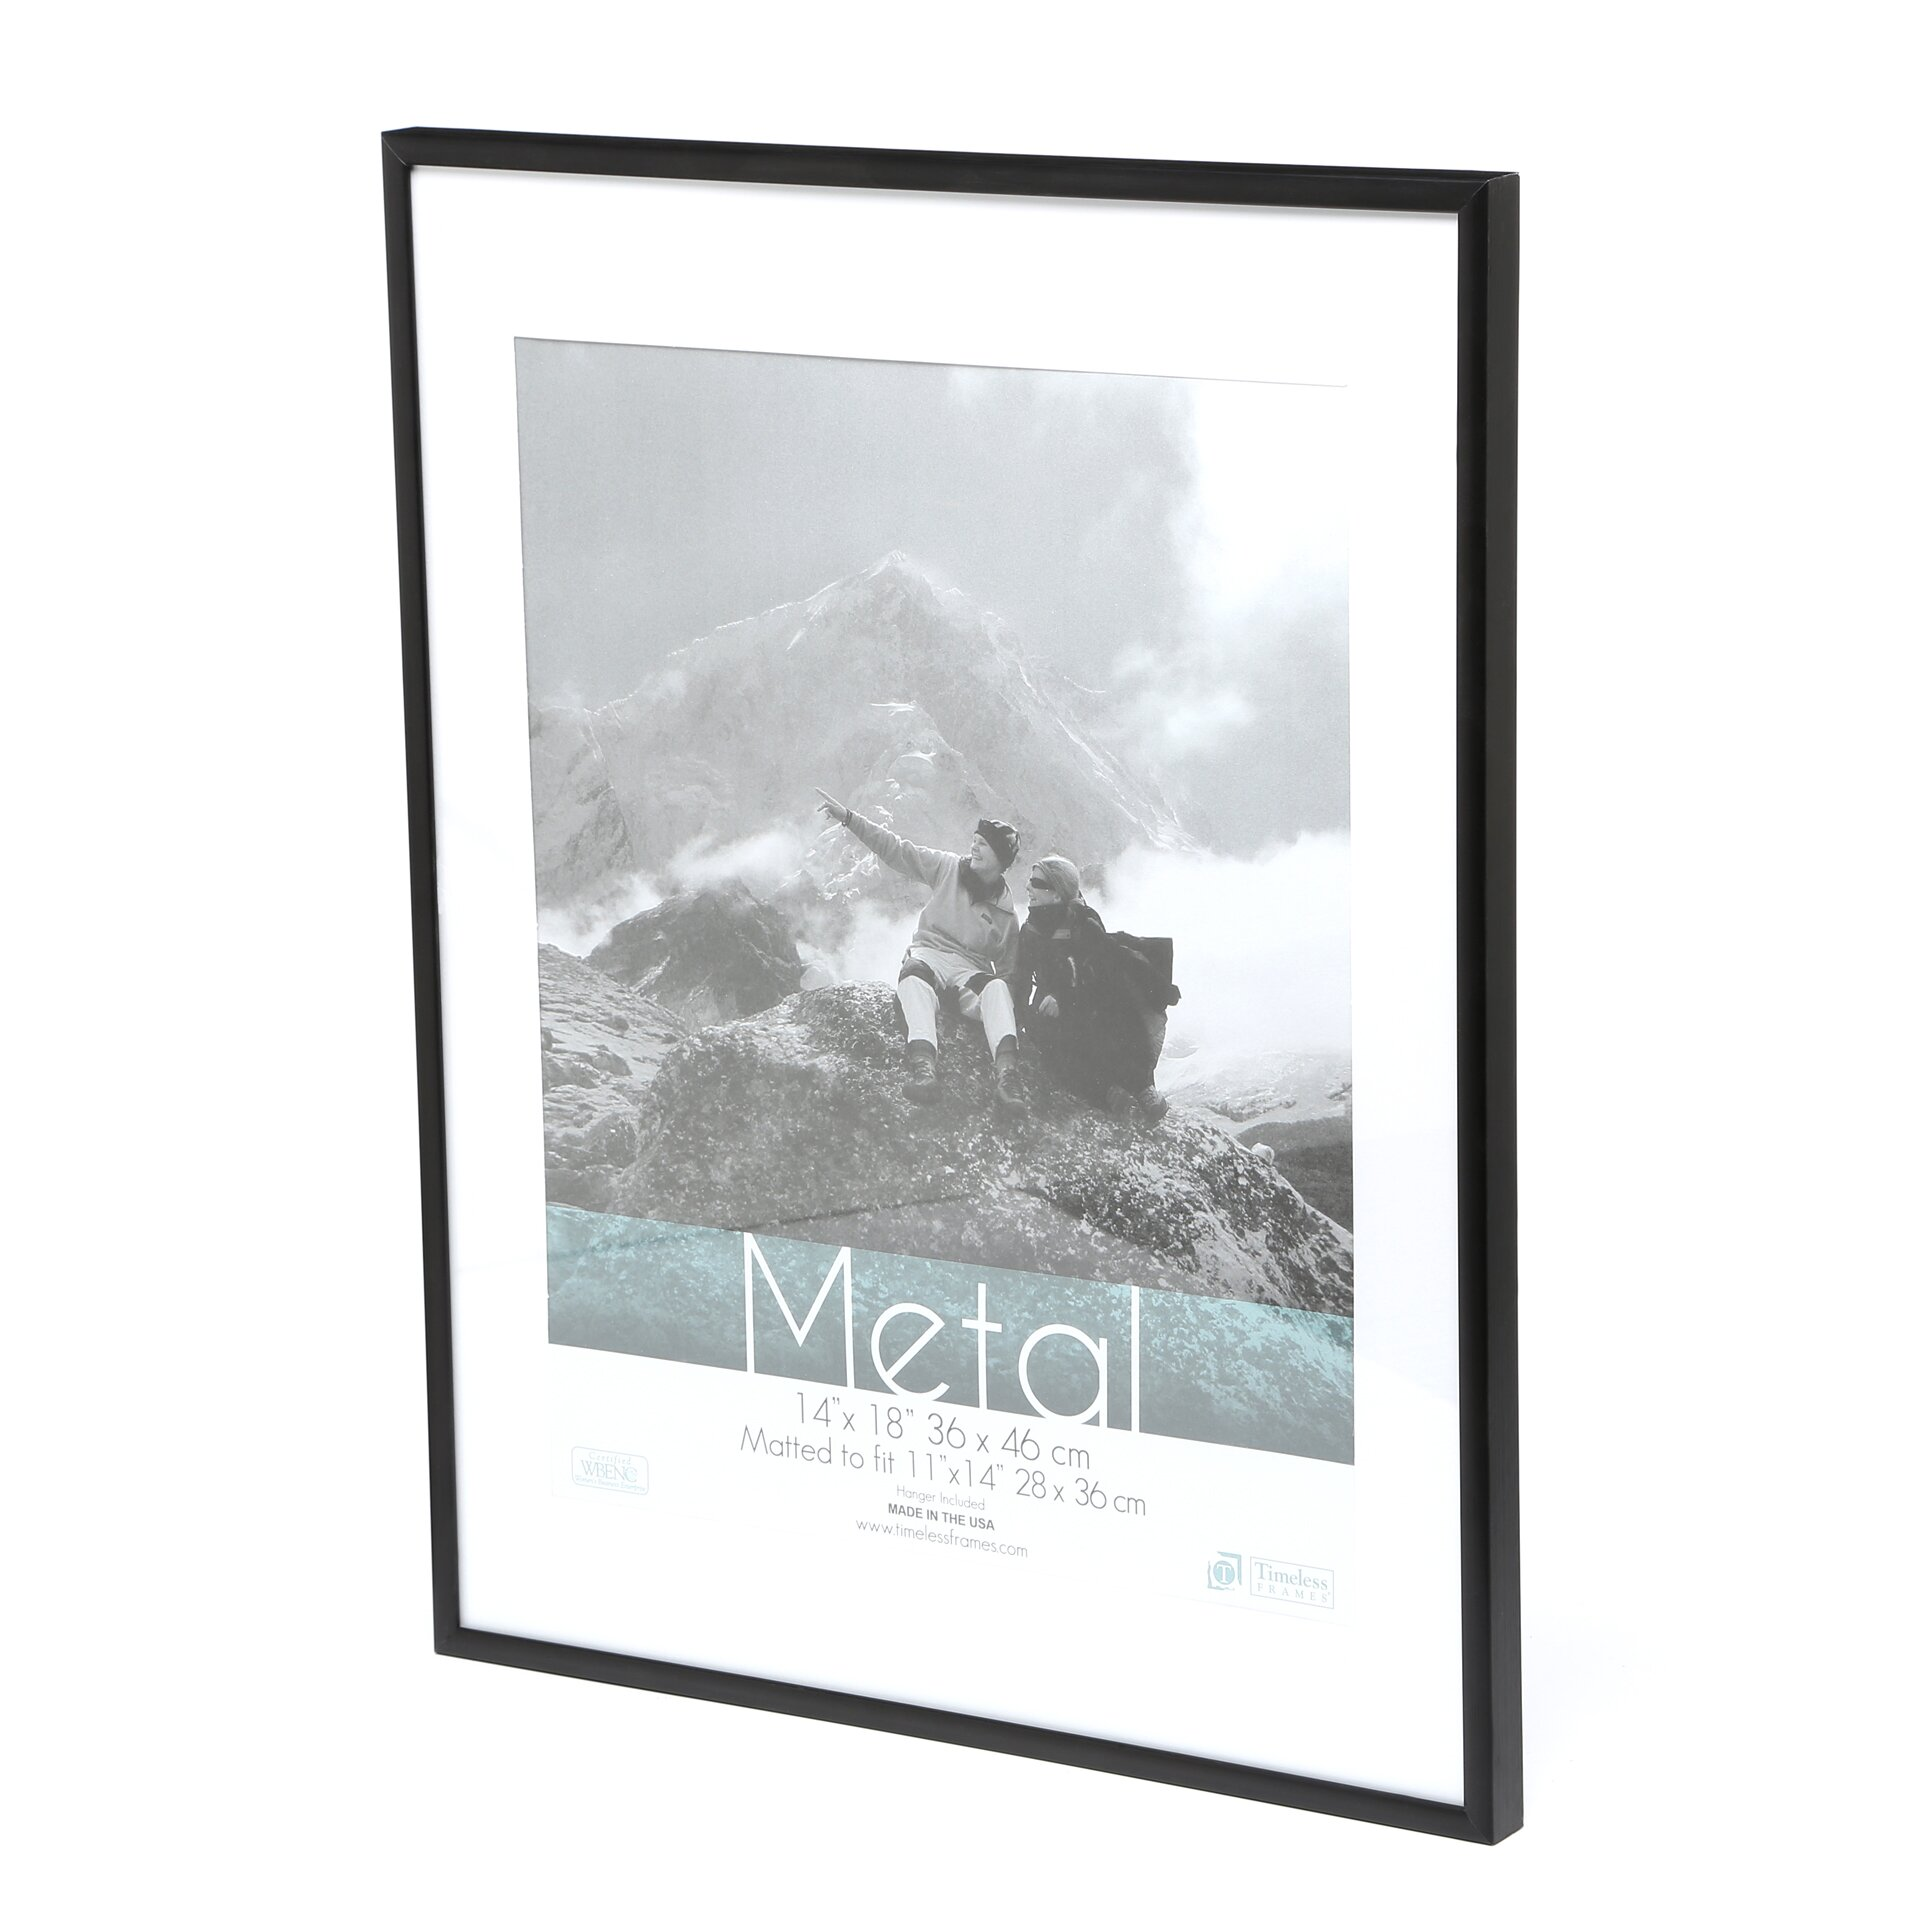 Varick gallery pearson metal matted photo picture frame for 11x14 table top frame